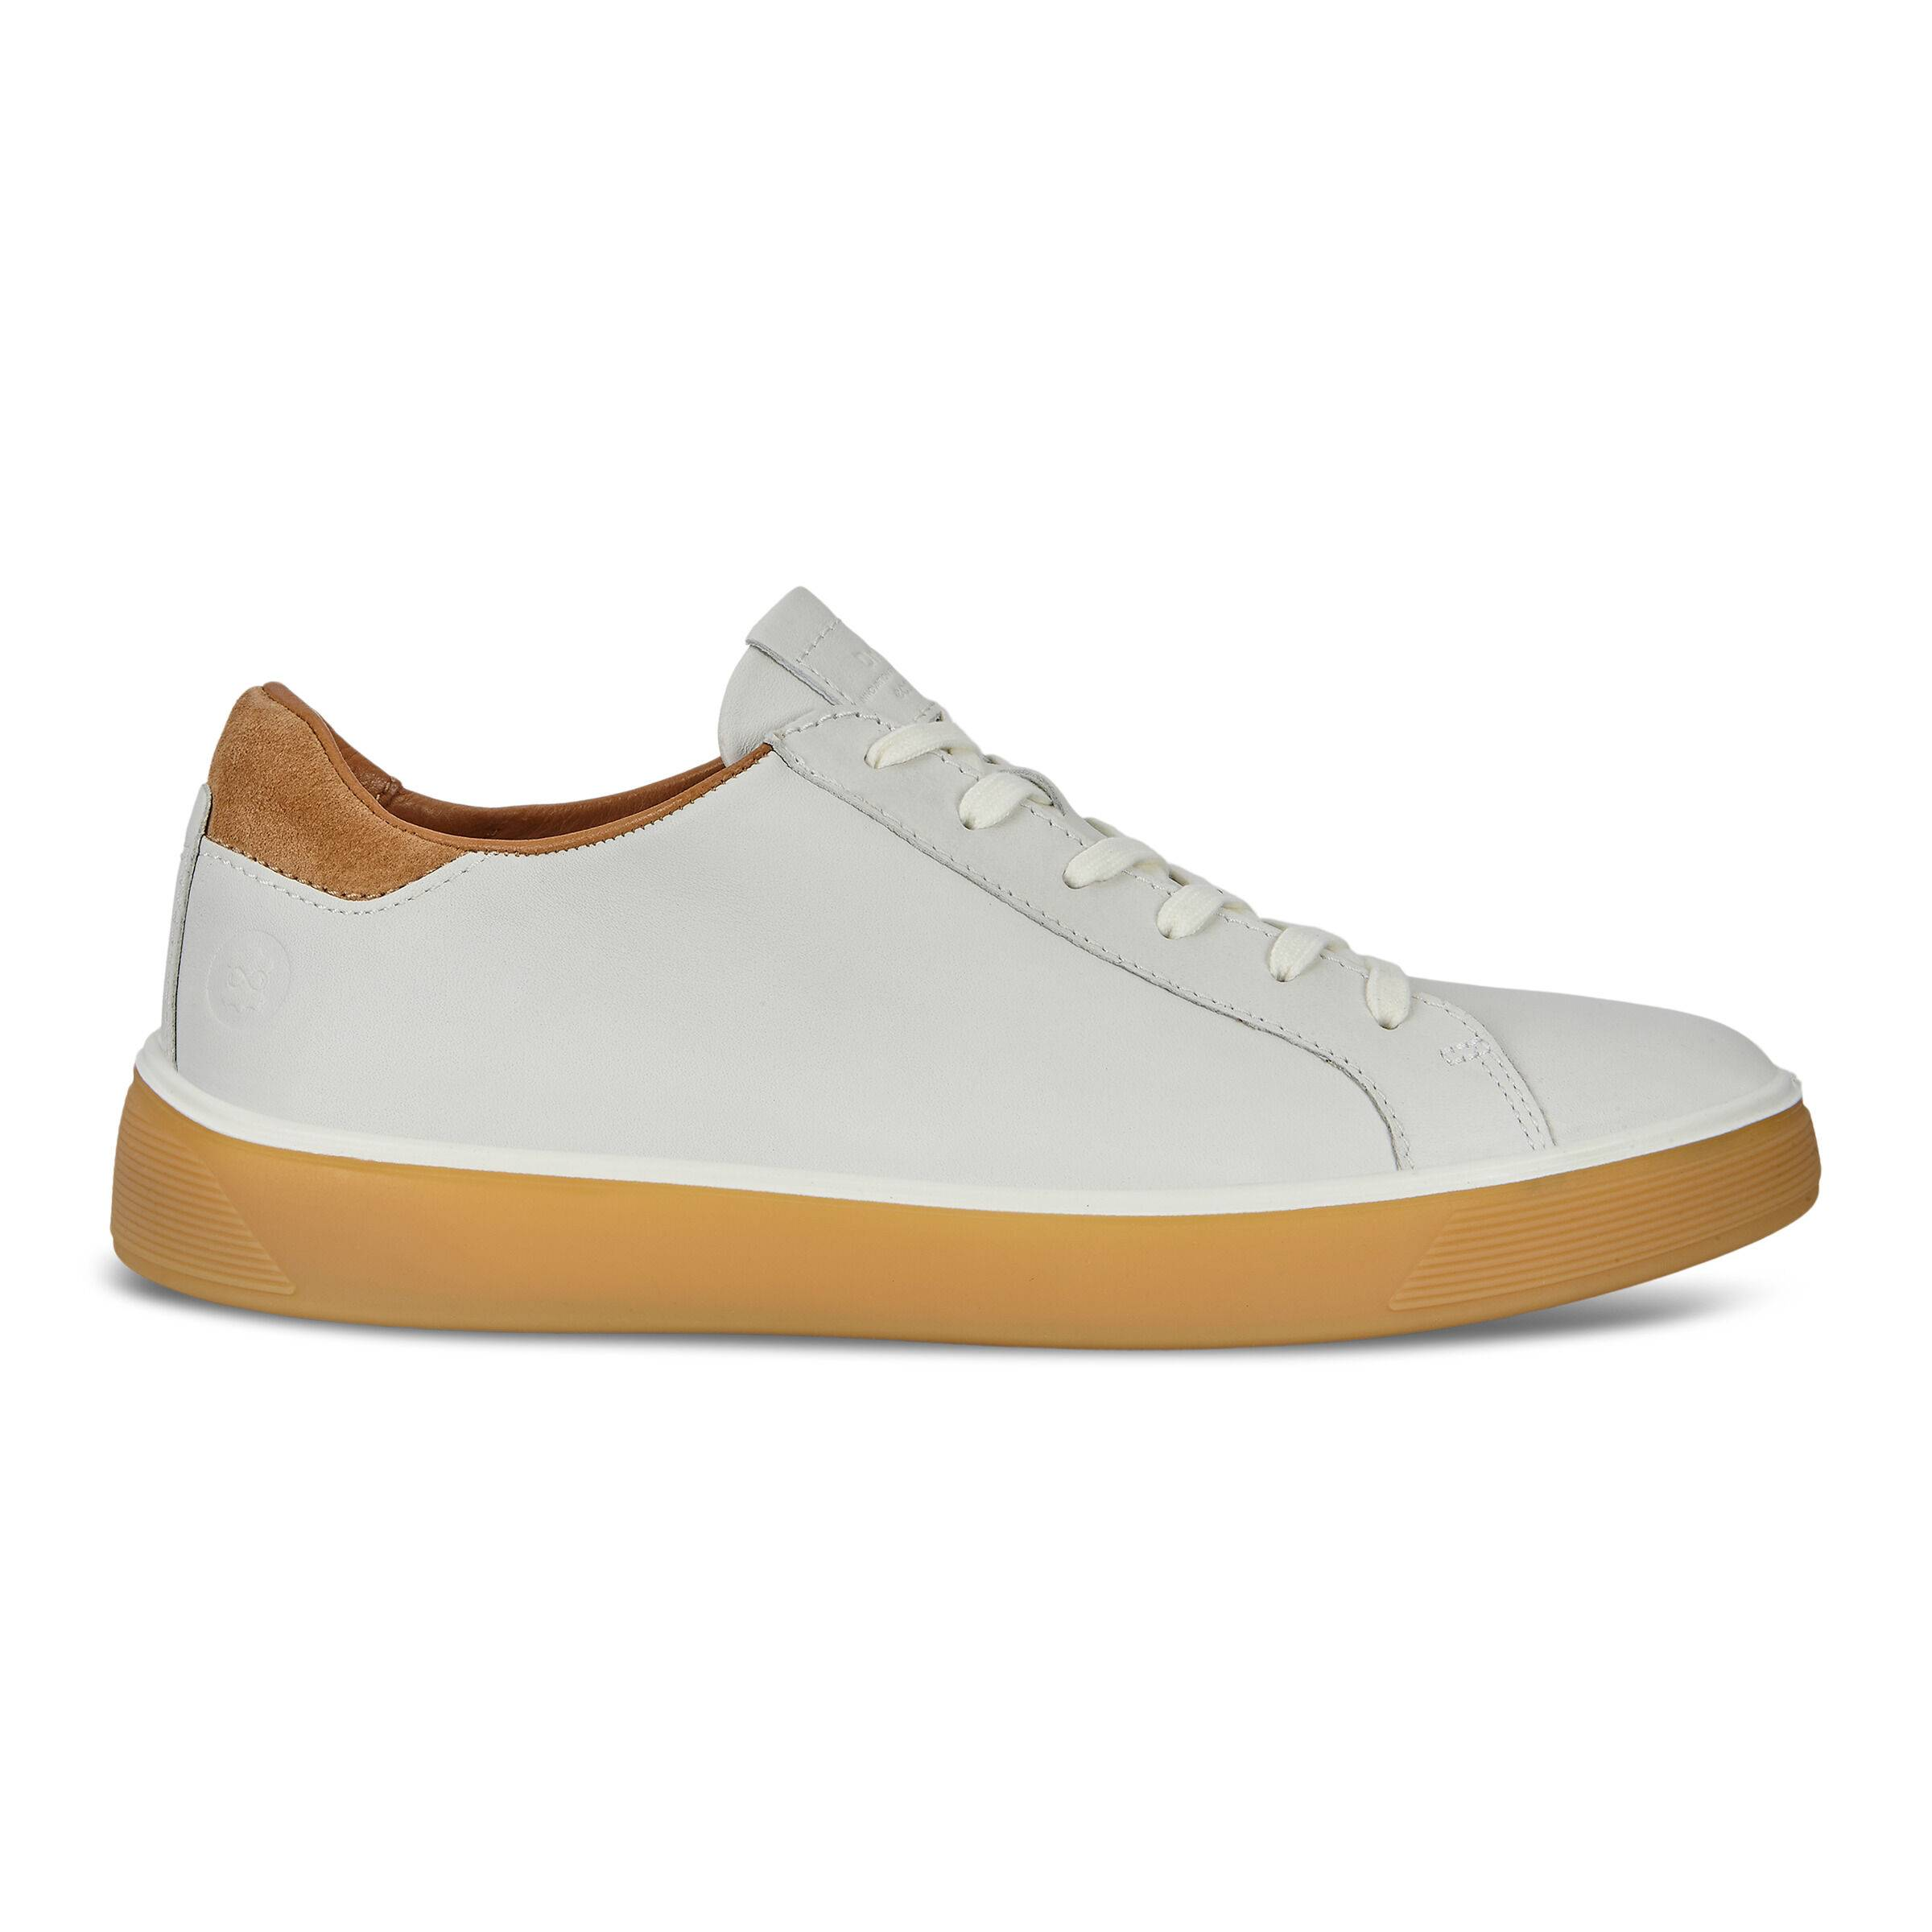 ECCO Street Tray Mens Shoes Sneakers size  : 12 - White